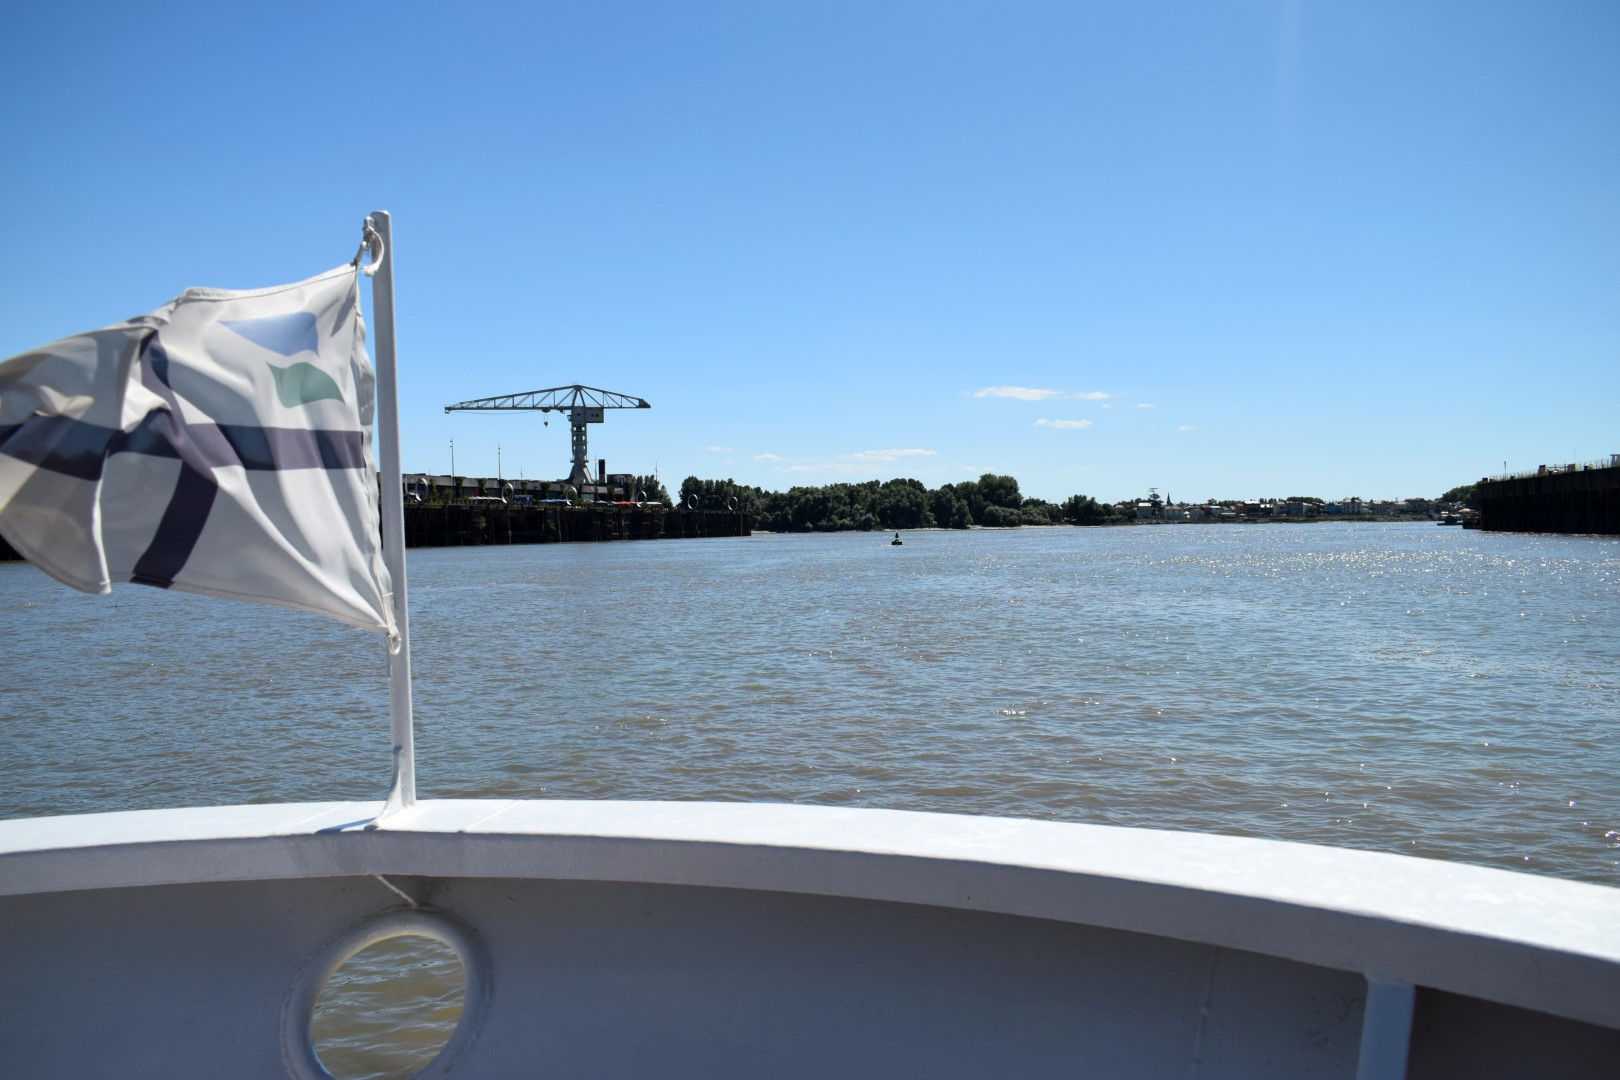 In the Navibus boat to Trentemoult across the Loire River, Nantes, July 2020